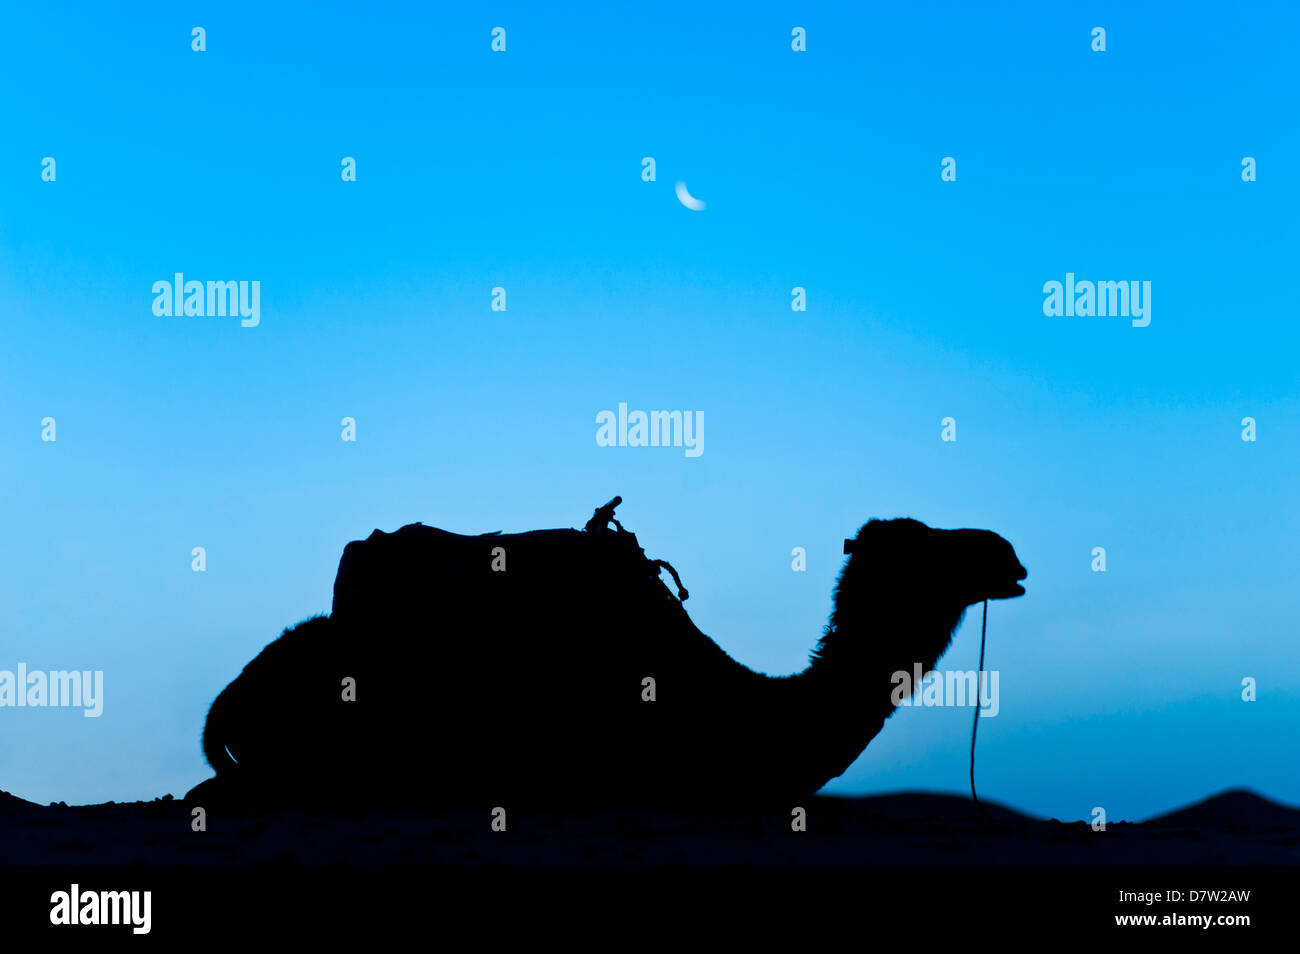 Silhouette of a camel in the desert at night, Erg Chebbi Desert, Morocco, North Africa Stock Photo